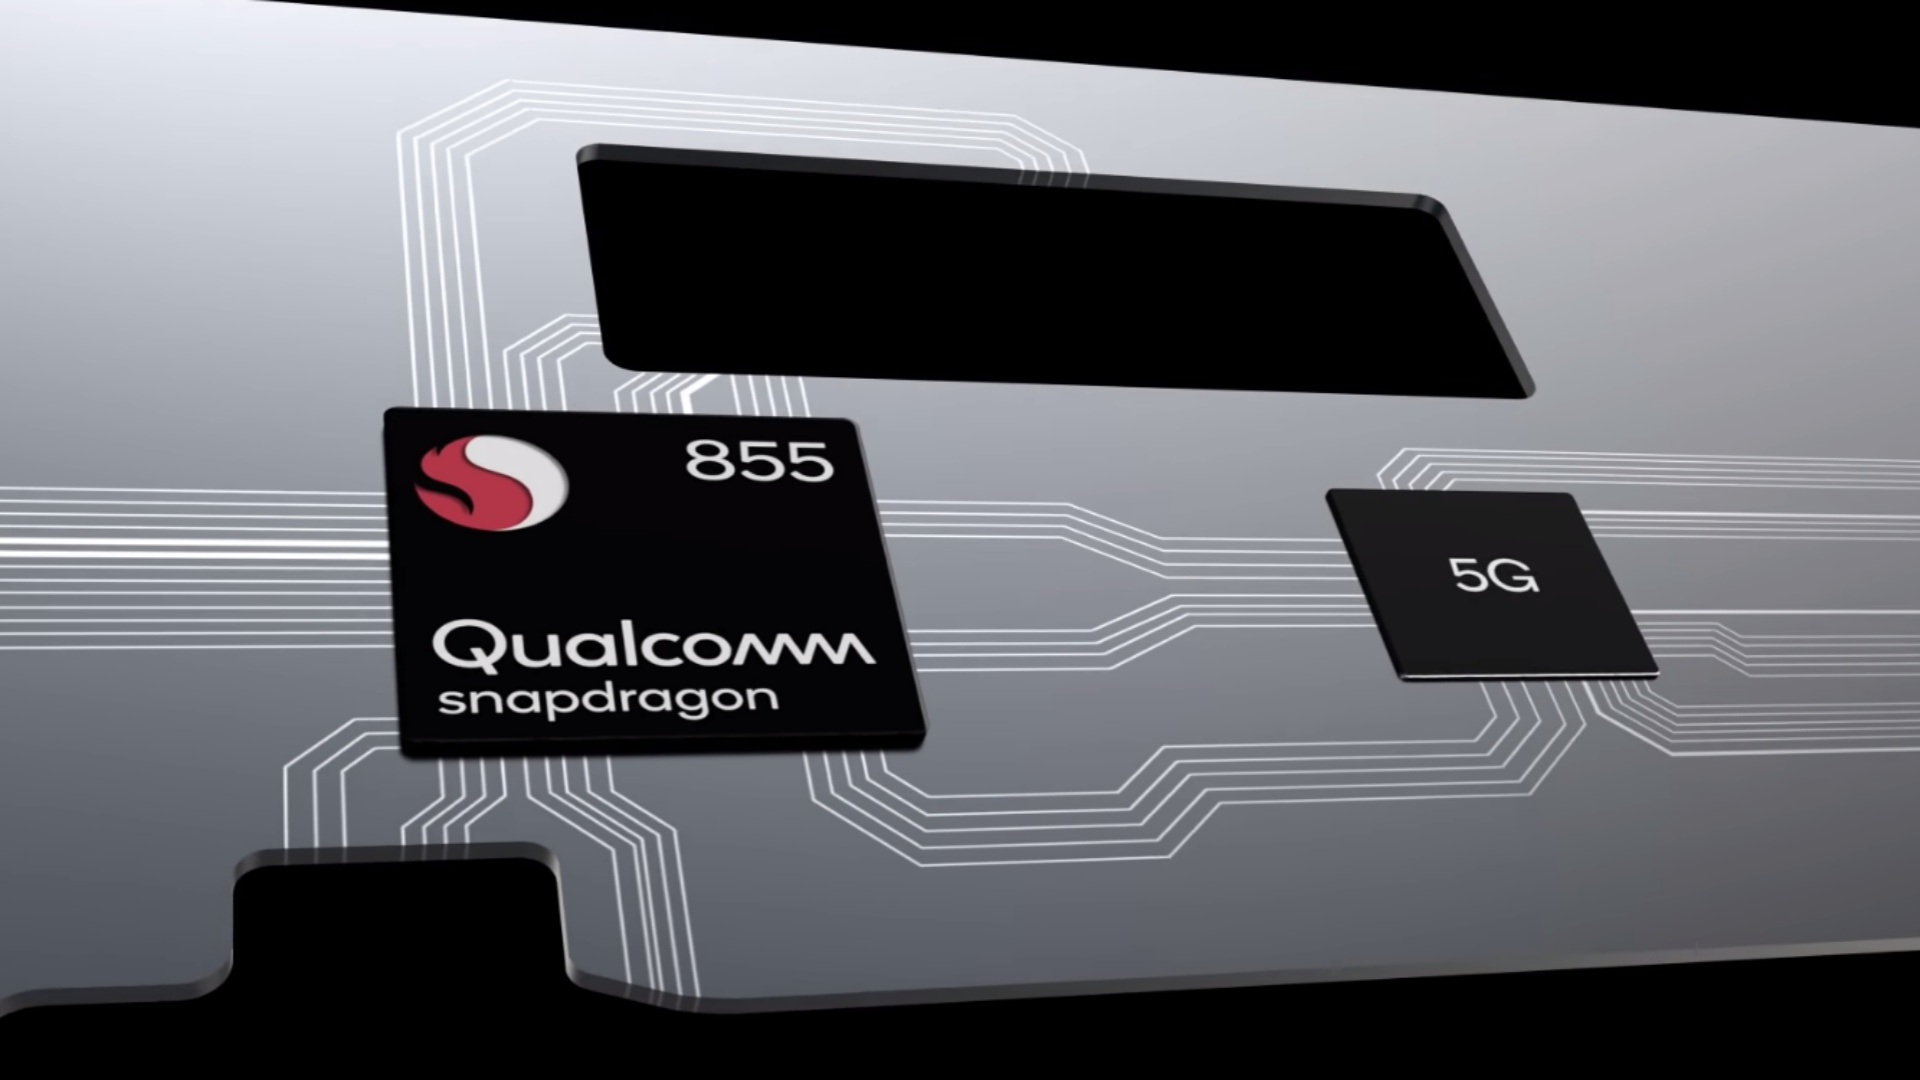 Qualcomm's new Snapdragon 855 processor is designed for 5G